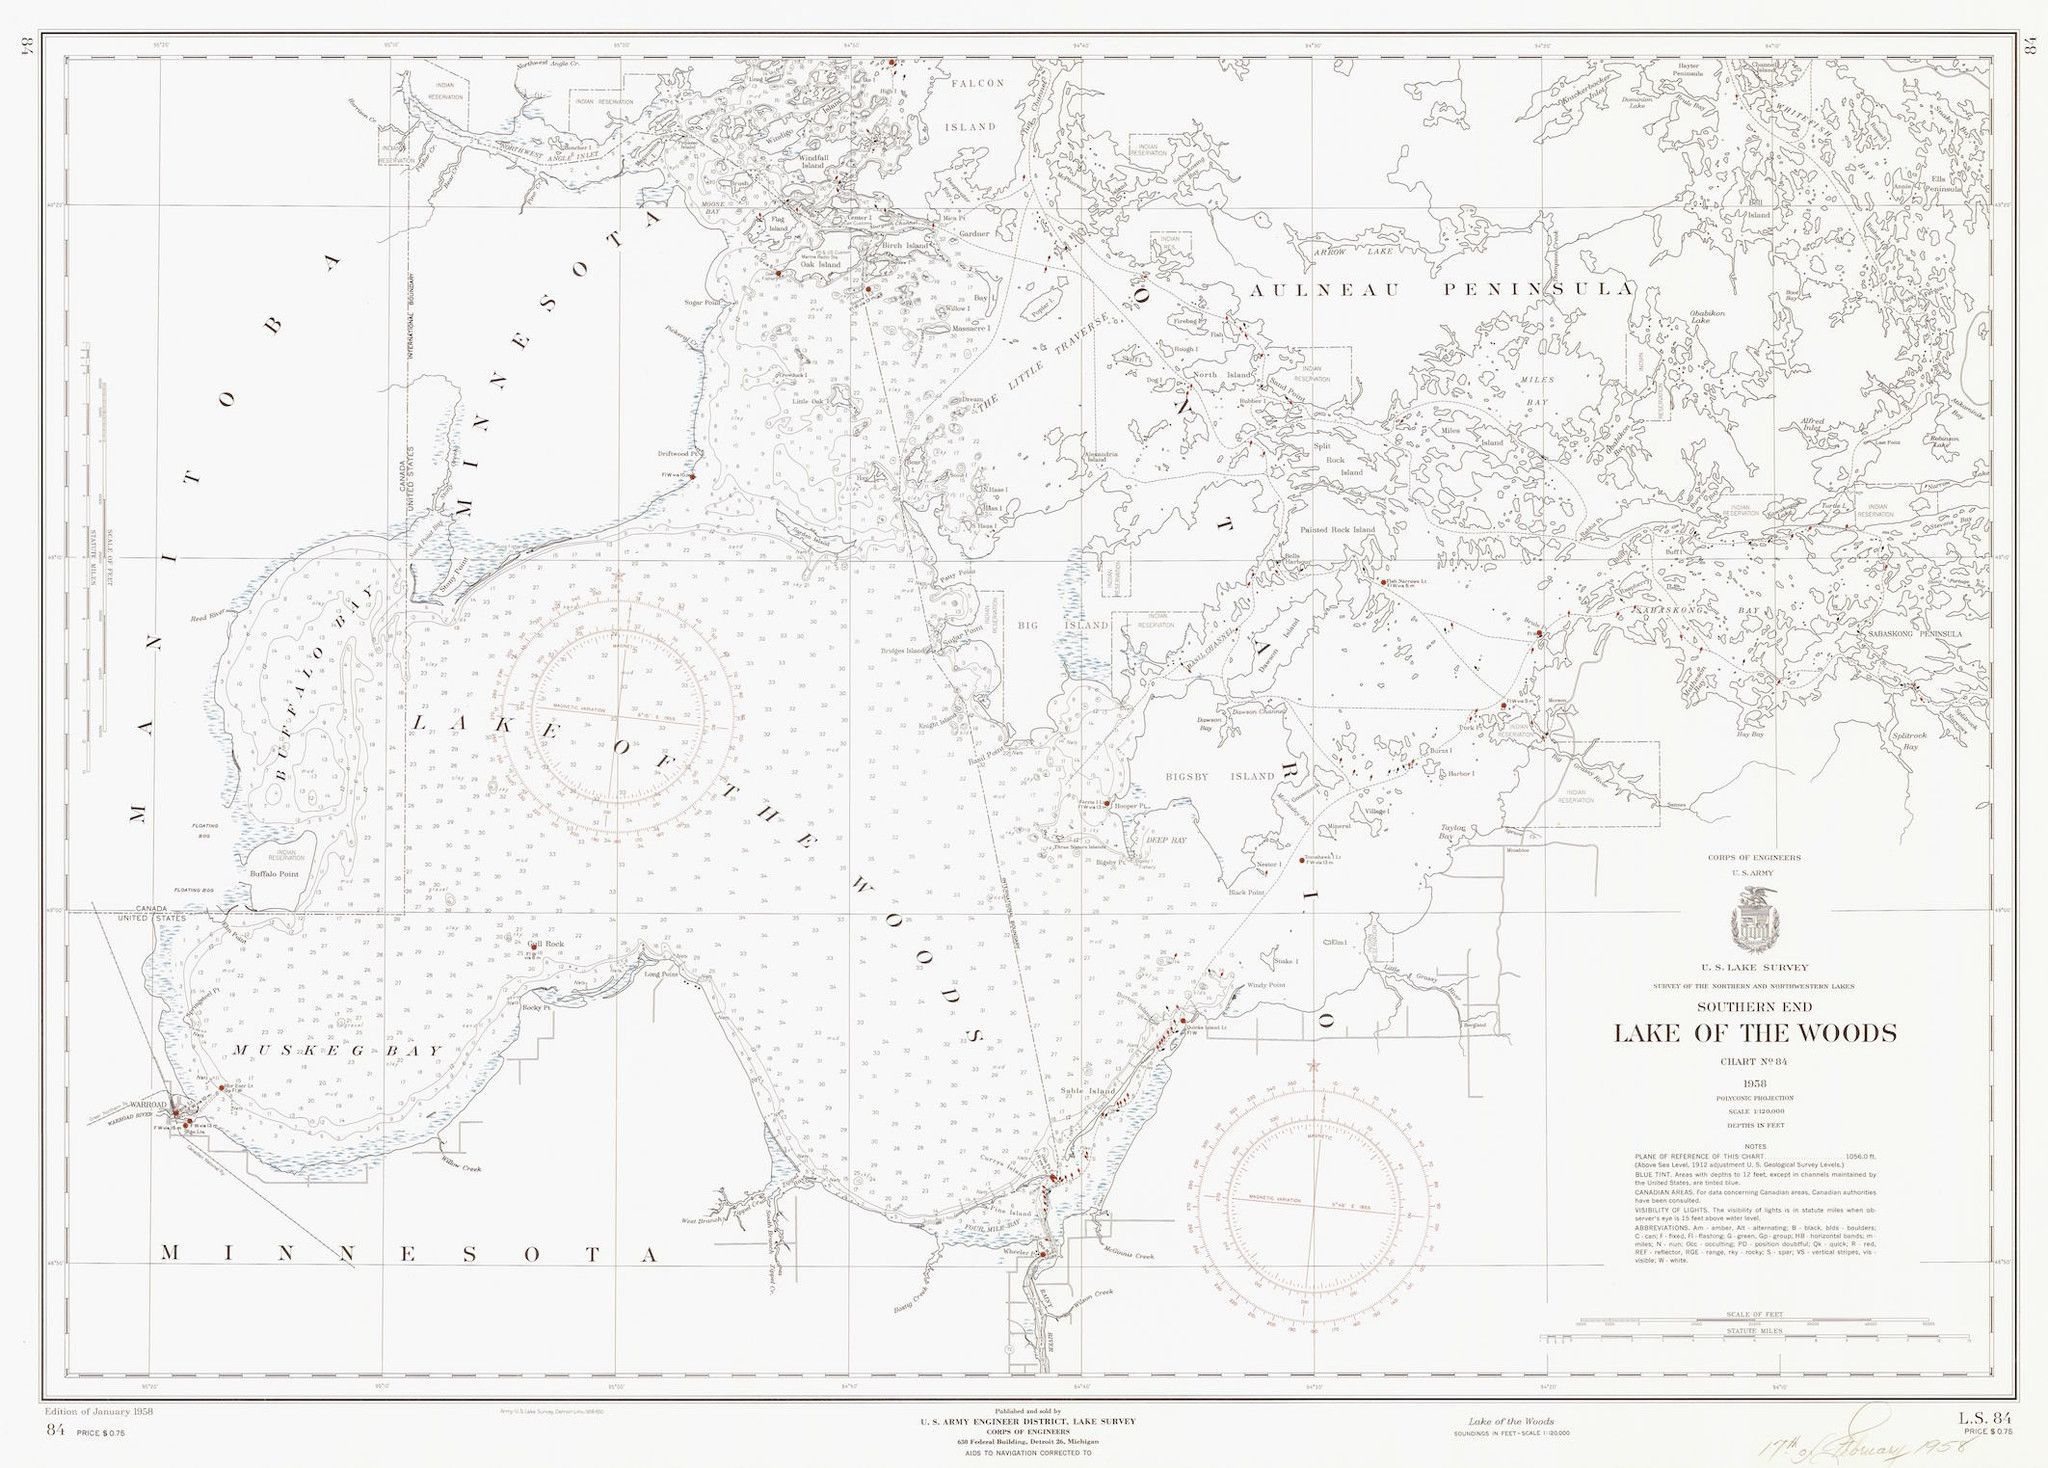 Lake of the Woods Historical Map - 1958 (Black & White)